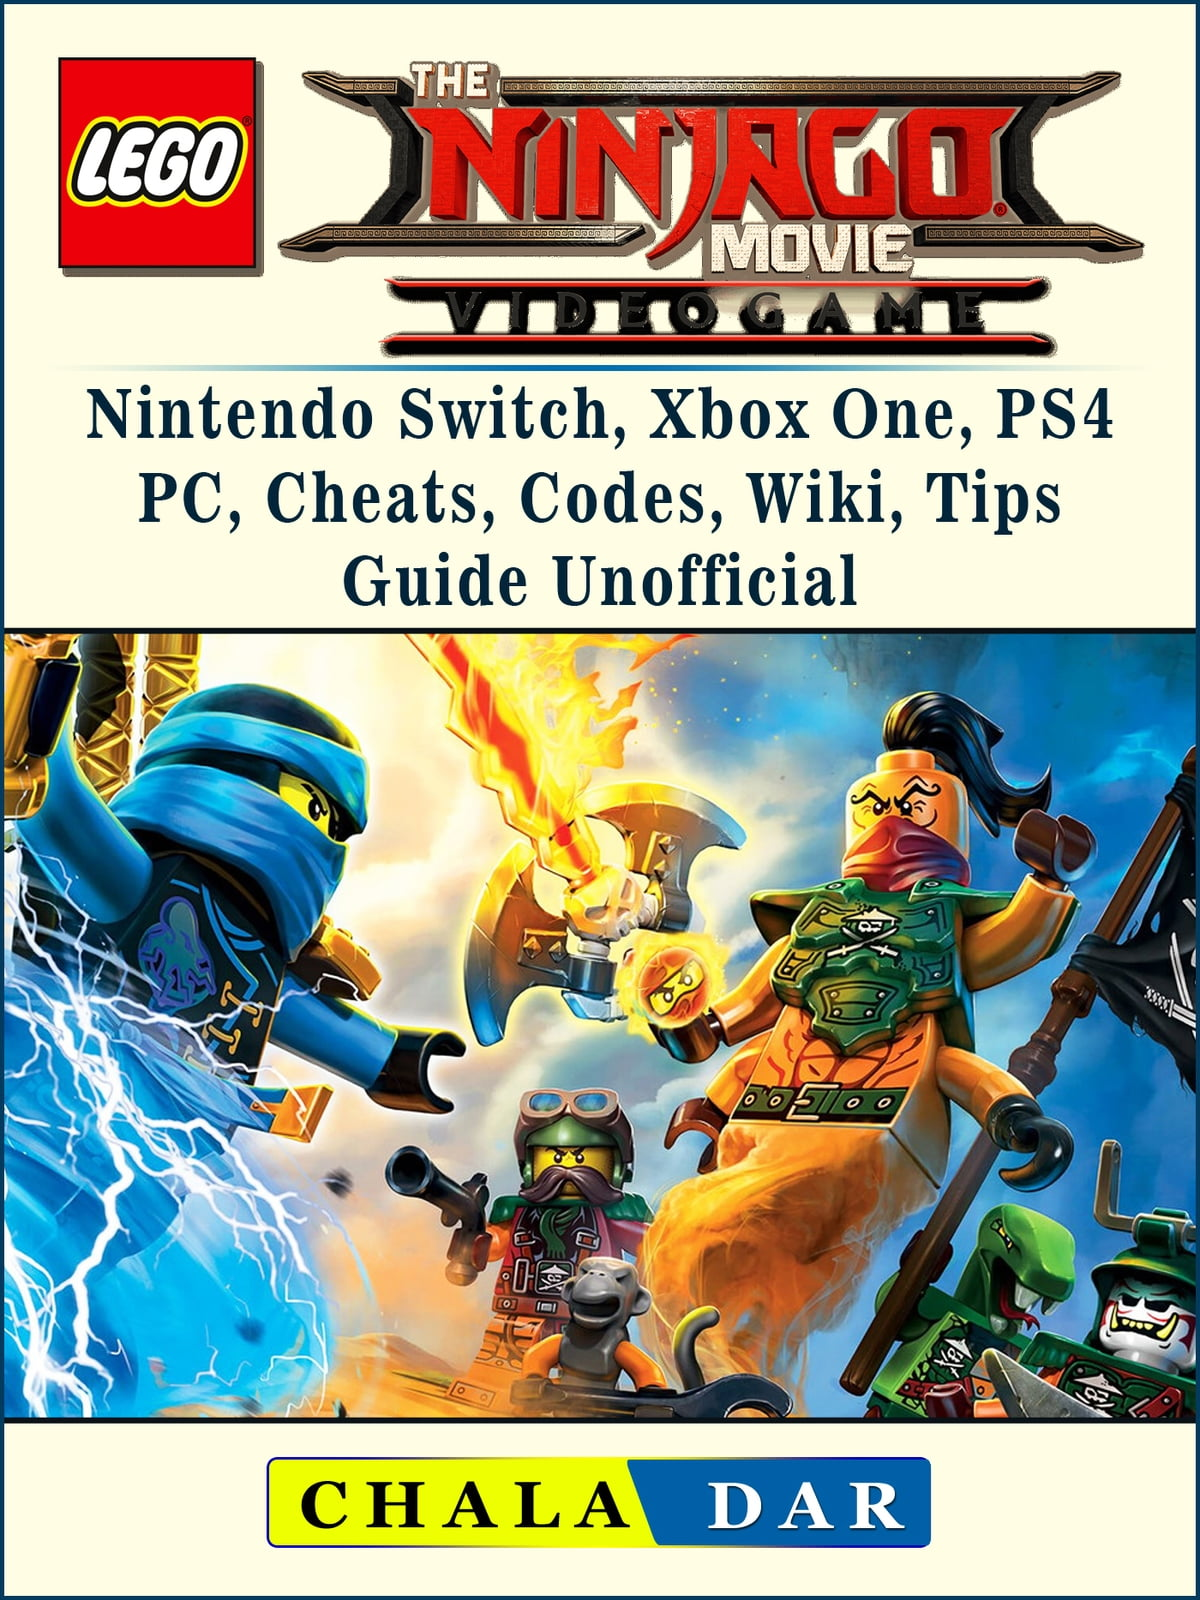 The Lego Ninjago Movie The Lego Ninjago Movie Video Game Nintendo Switch Xbox One Ps4 Pc Cheats Codes Wiki Tips Guide Unofficial Ebook By Chala Dar Rakuten Kobo